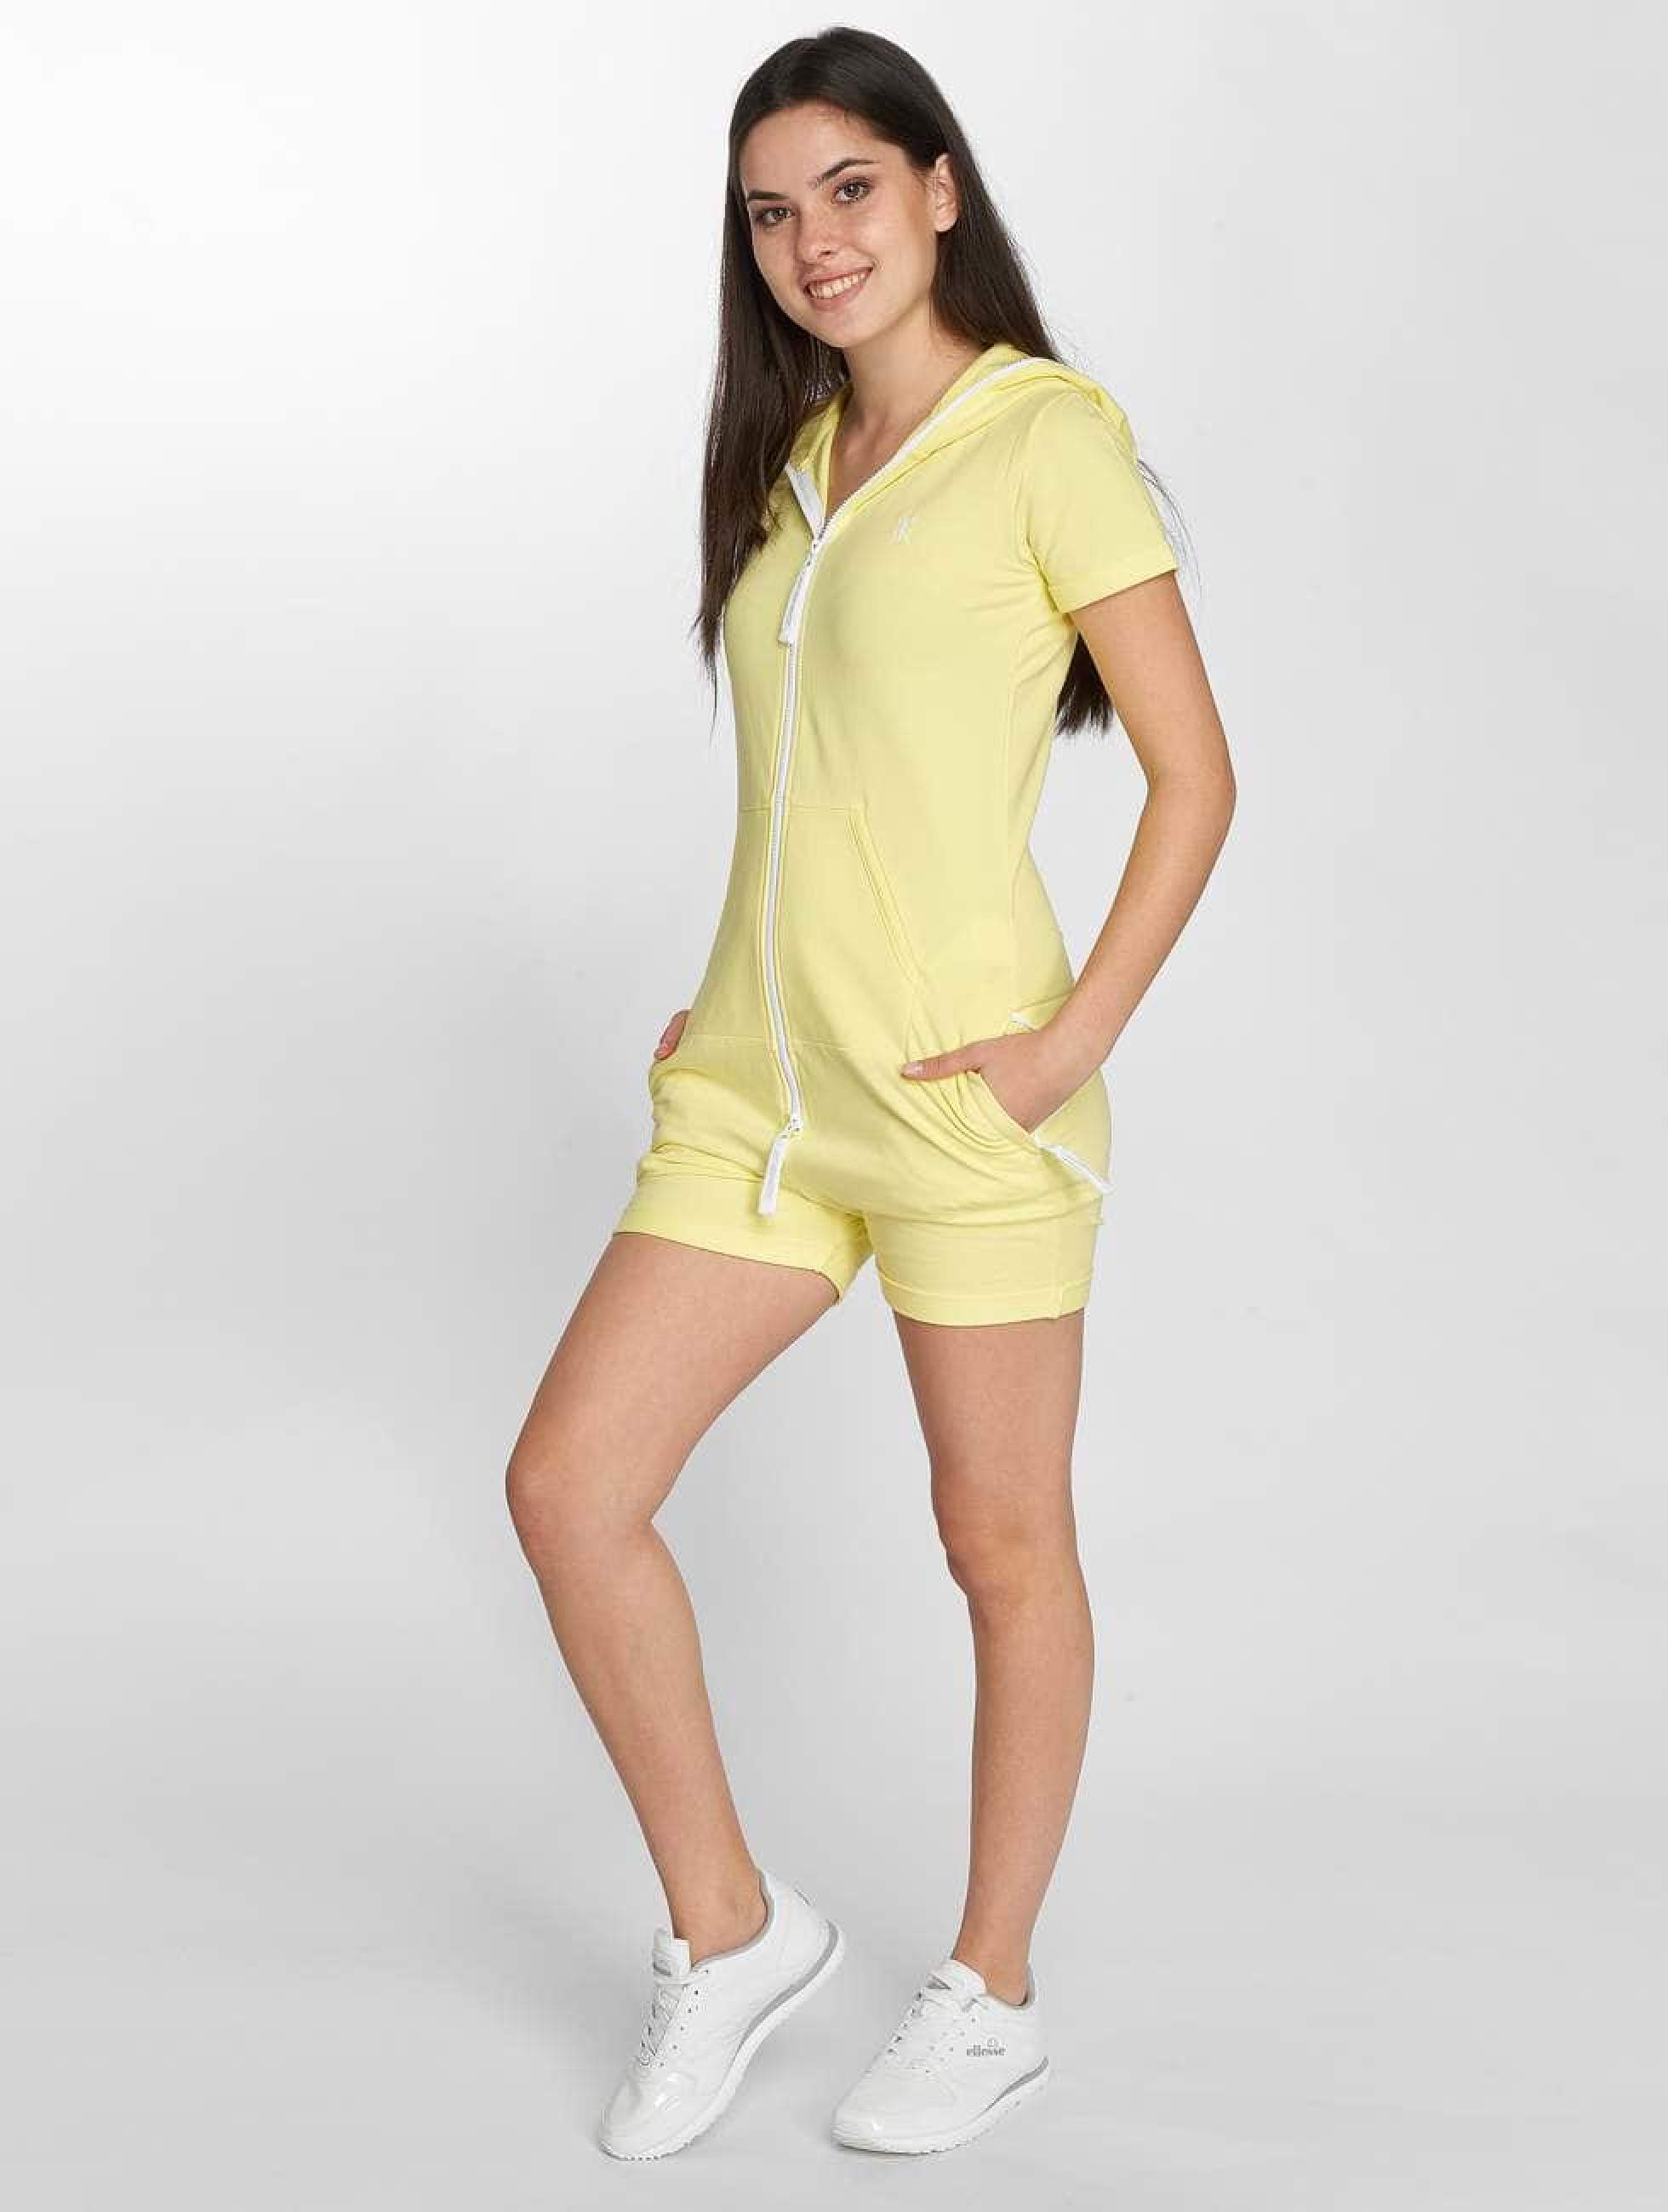 One piece Fitted Short Combinaison Femme